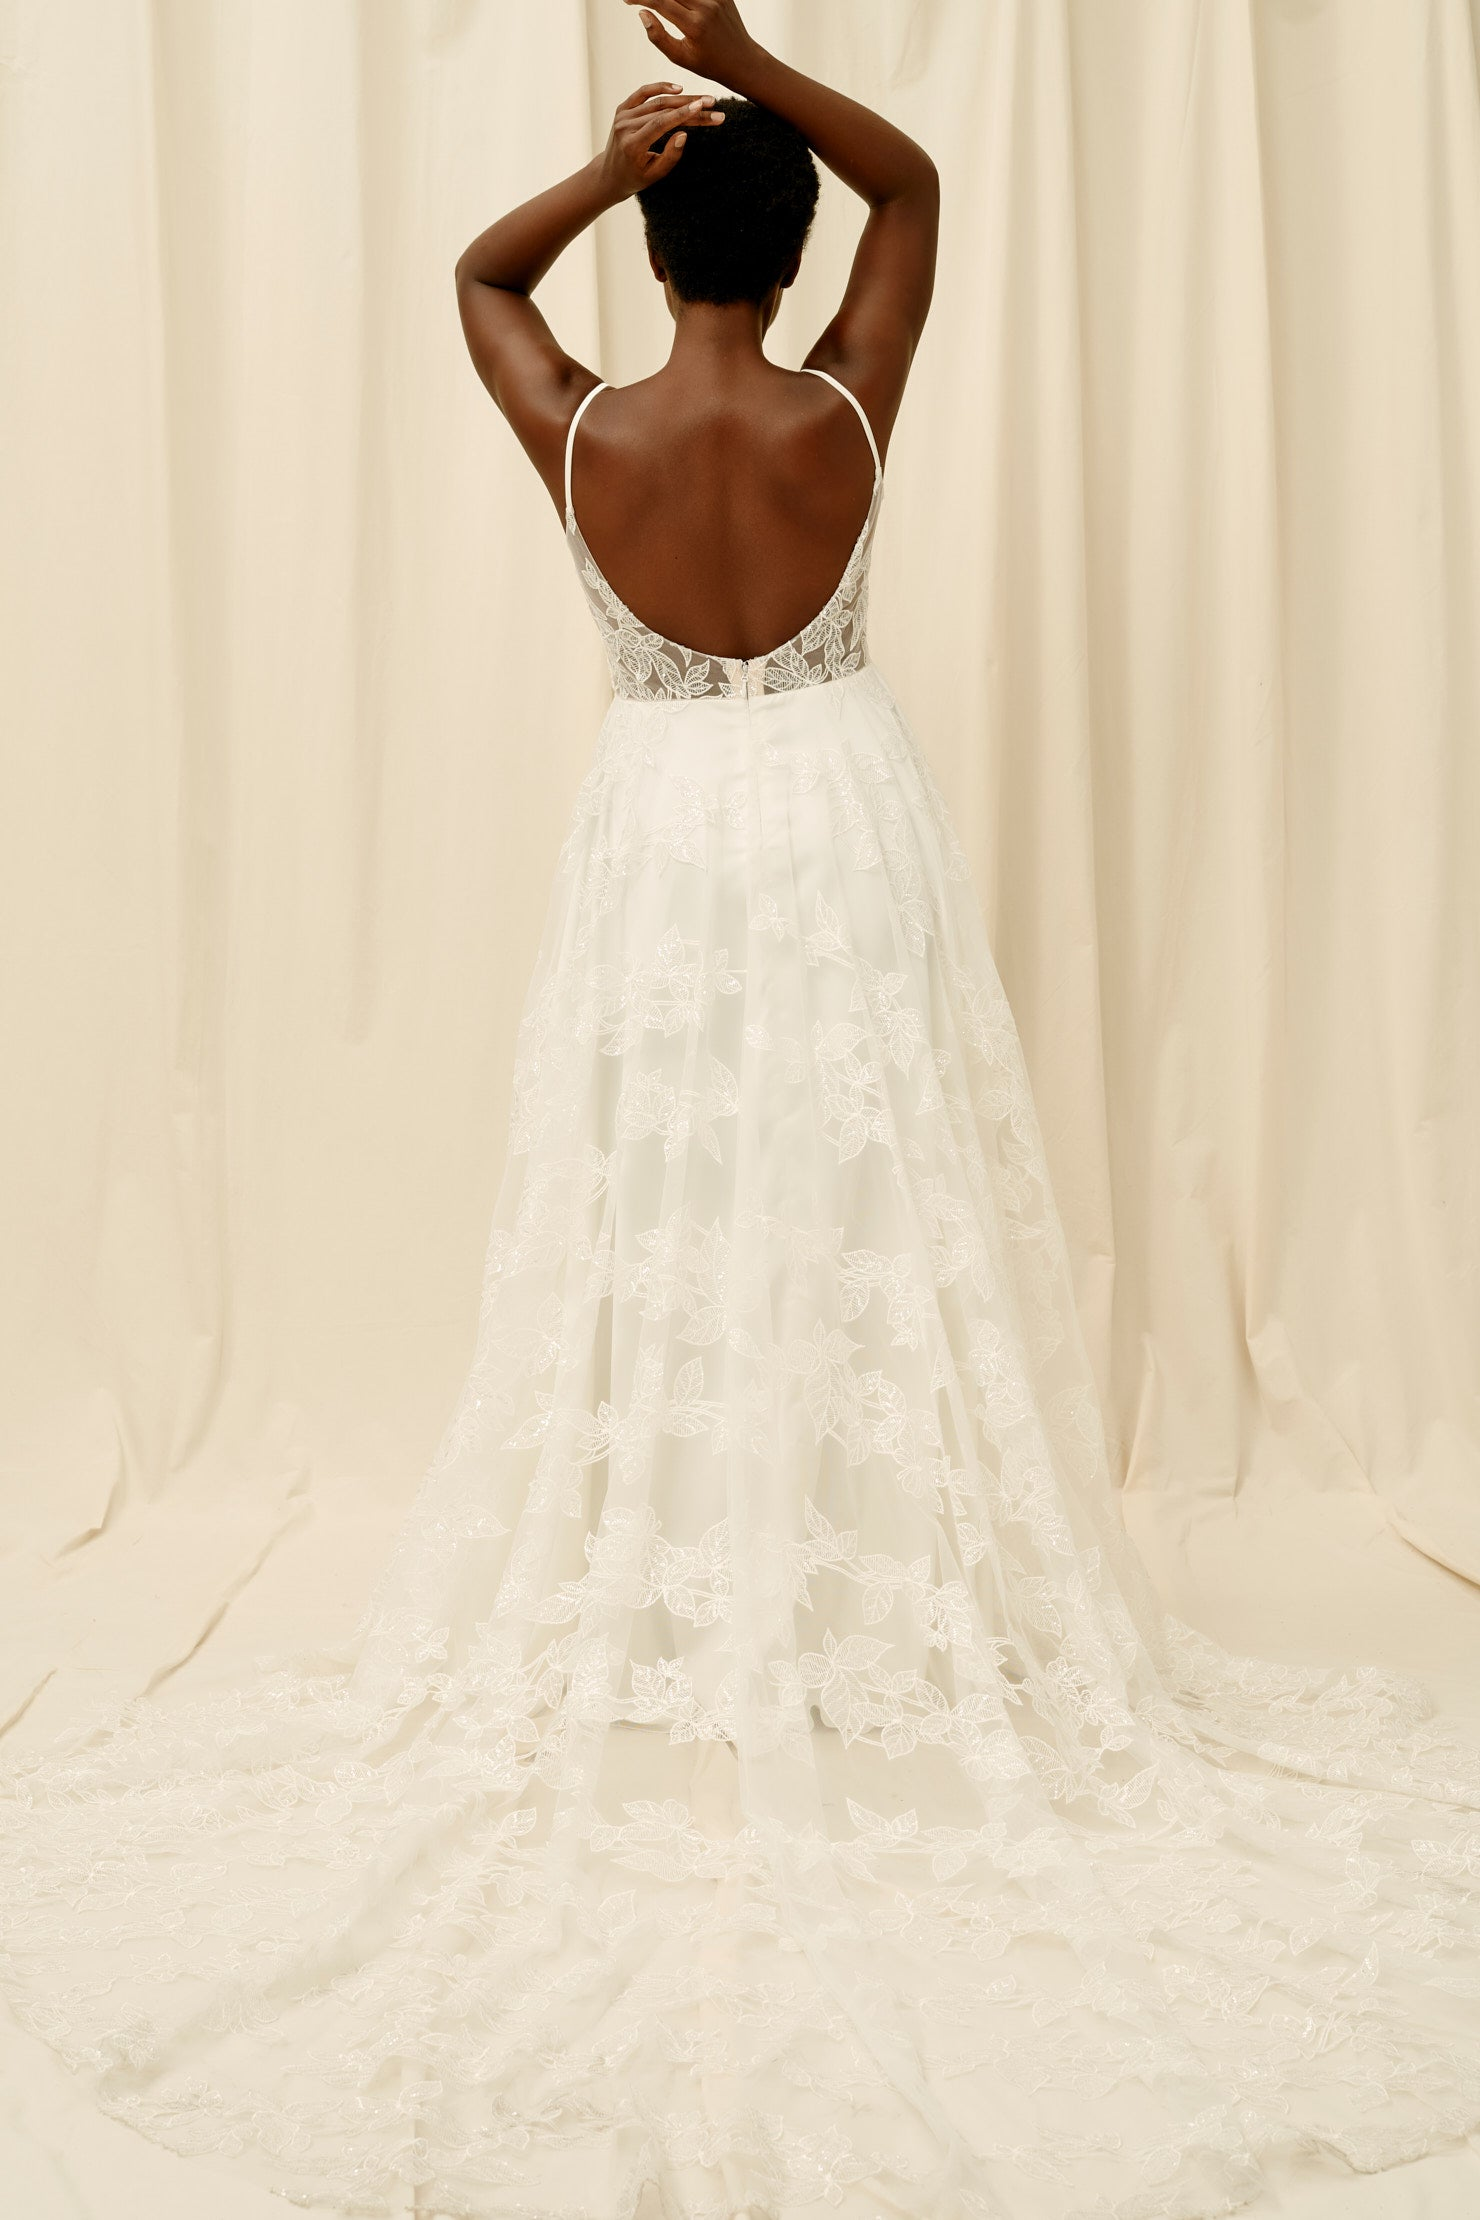 Backless wedding dress with botanical lace and spaghetti straps